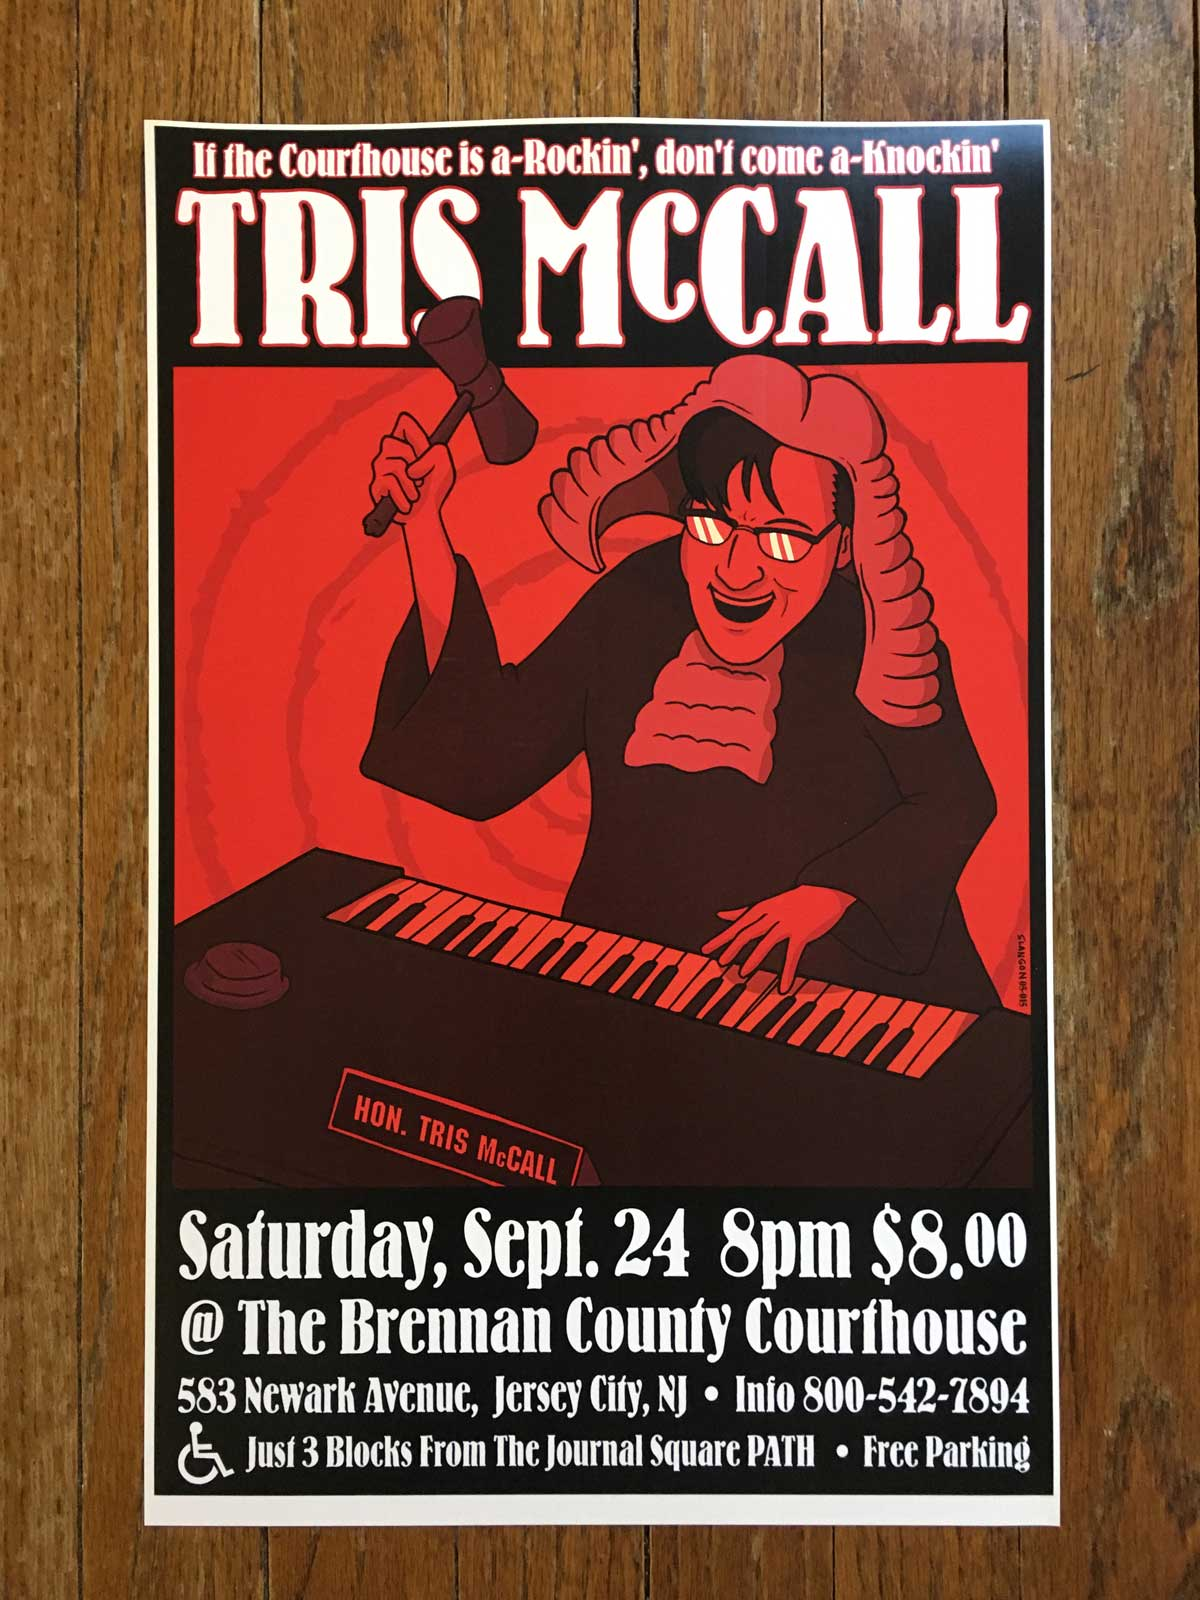 Tris McCall @ The Brennan County Courthouse